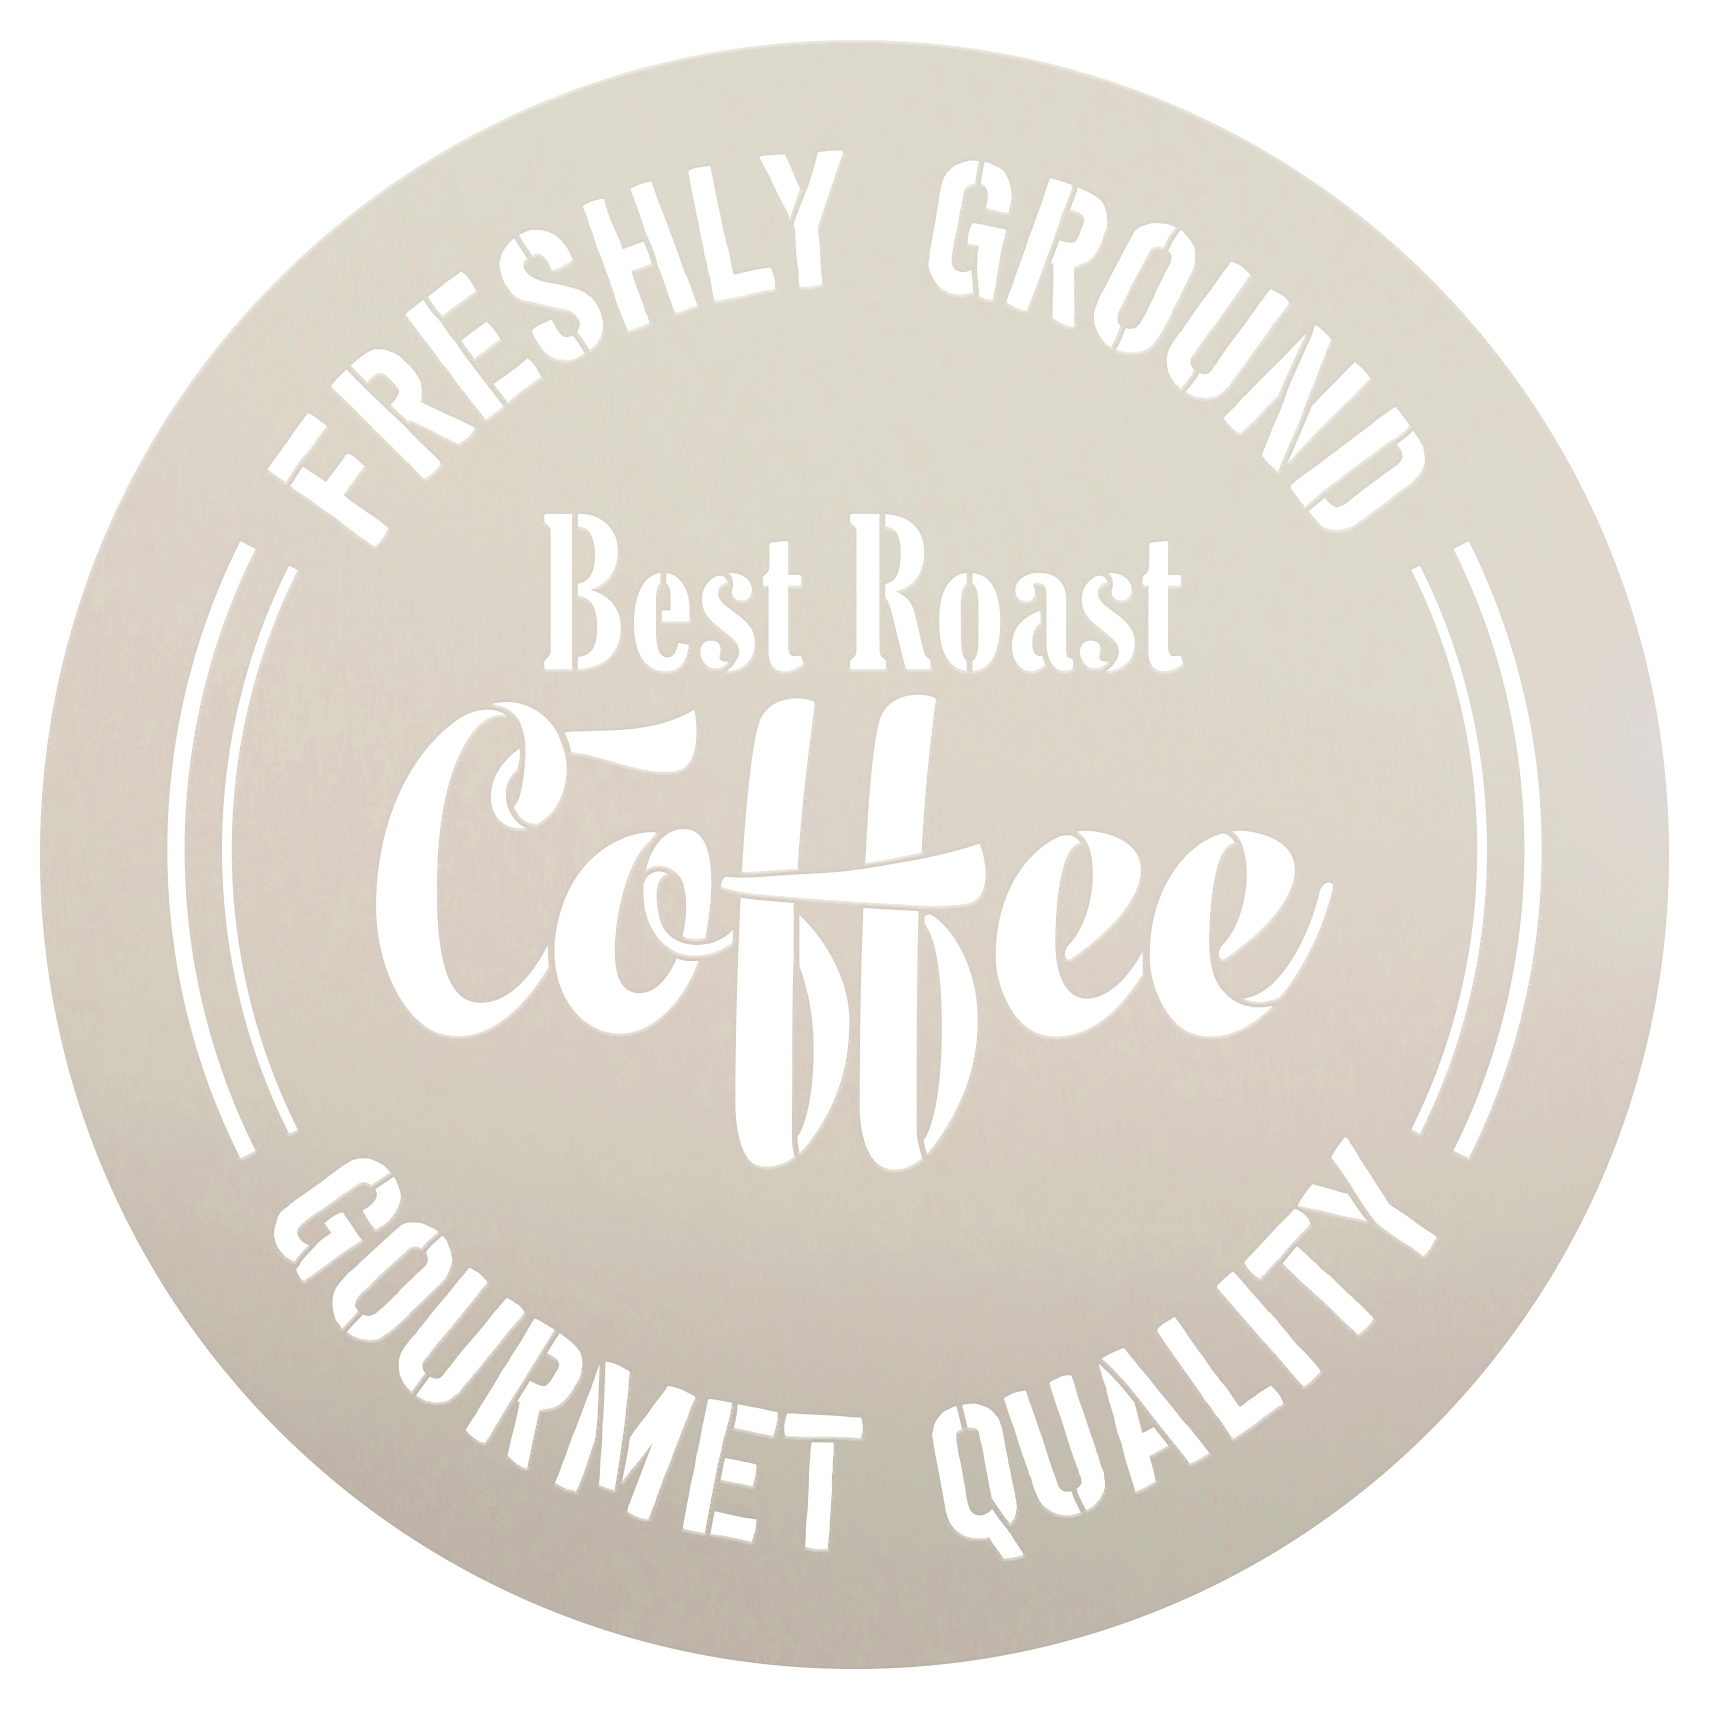 "Best Roast Coffee | Freshly Ground | Gourmet Quality Stencil by StudioR12 | Coffee Art  | Reusable Mylar Template | 9.5"" Round 